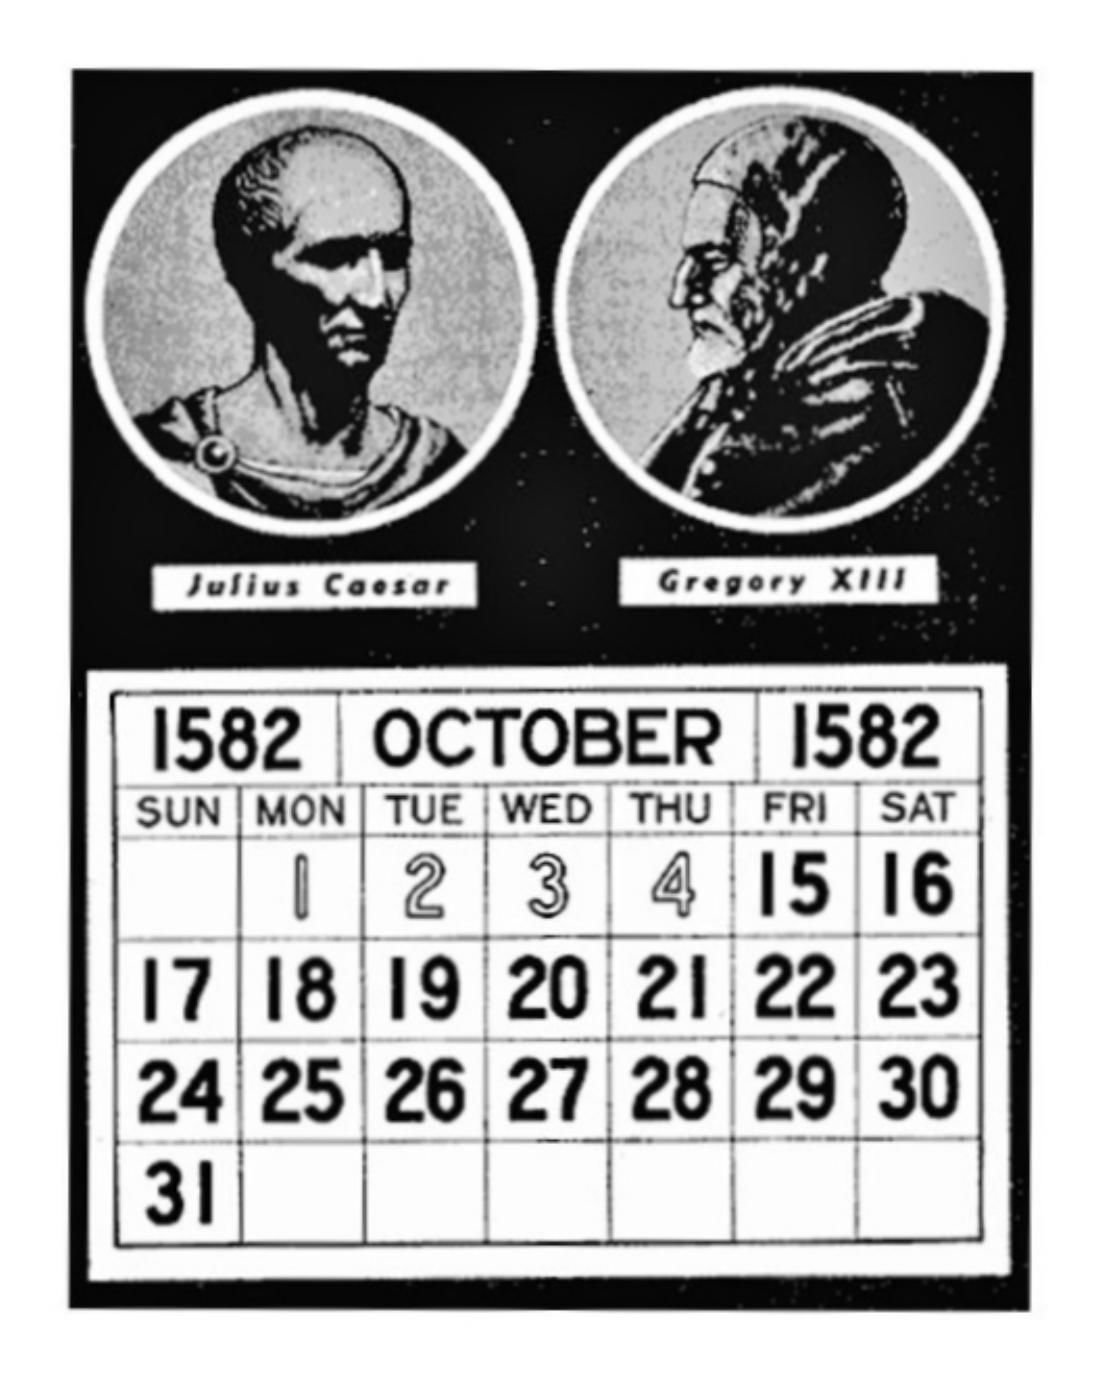 The calendar in October 1582 lost 11 days during the conversion from the Julian to the Gregorian calendar.